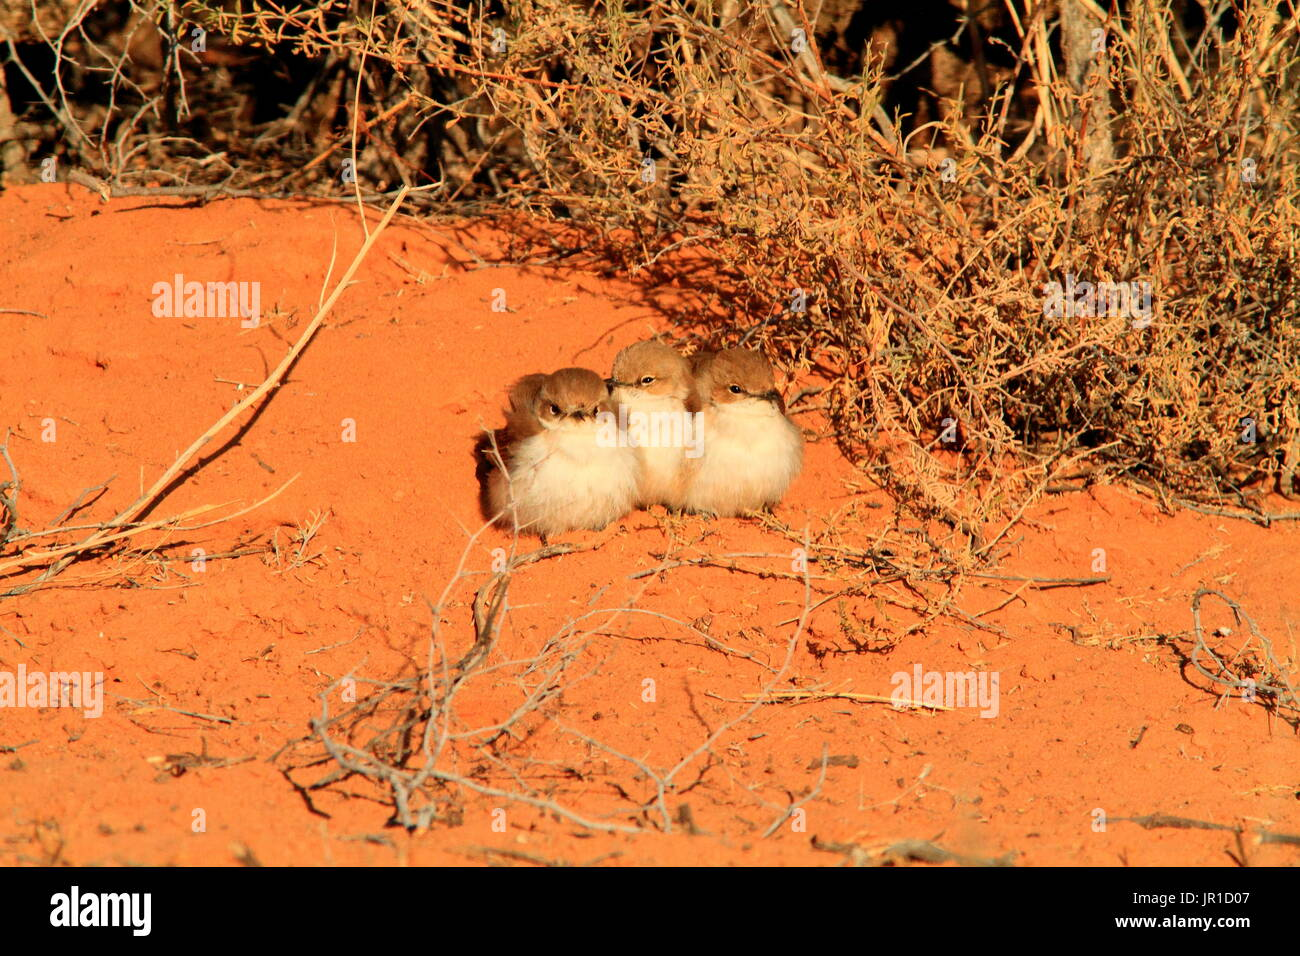 Marico Flycatcher (Melaenornis mariquensis) group on ground, Southern Africa - Stock Image